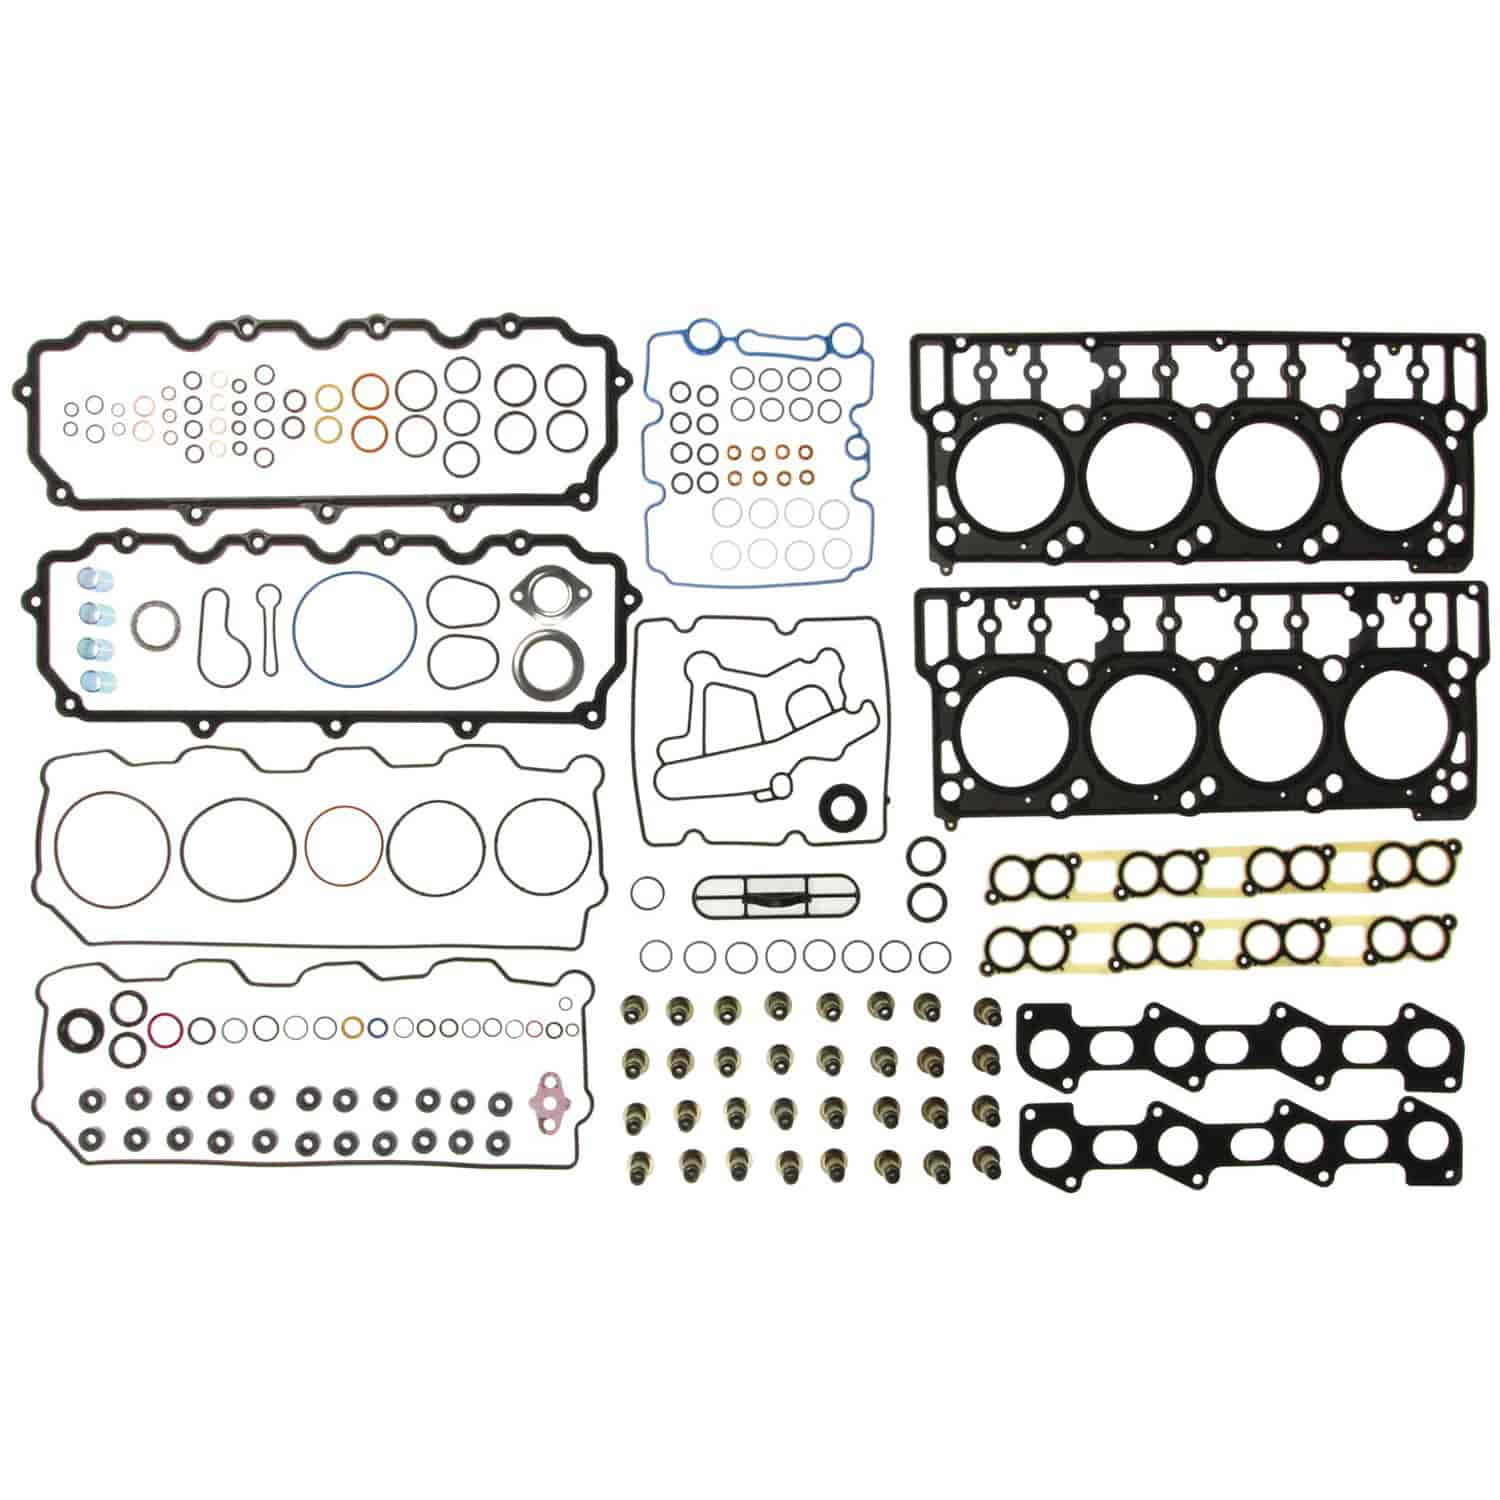 Clevite Mahle Hs Head Gasket Set Ford